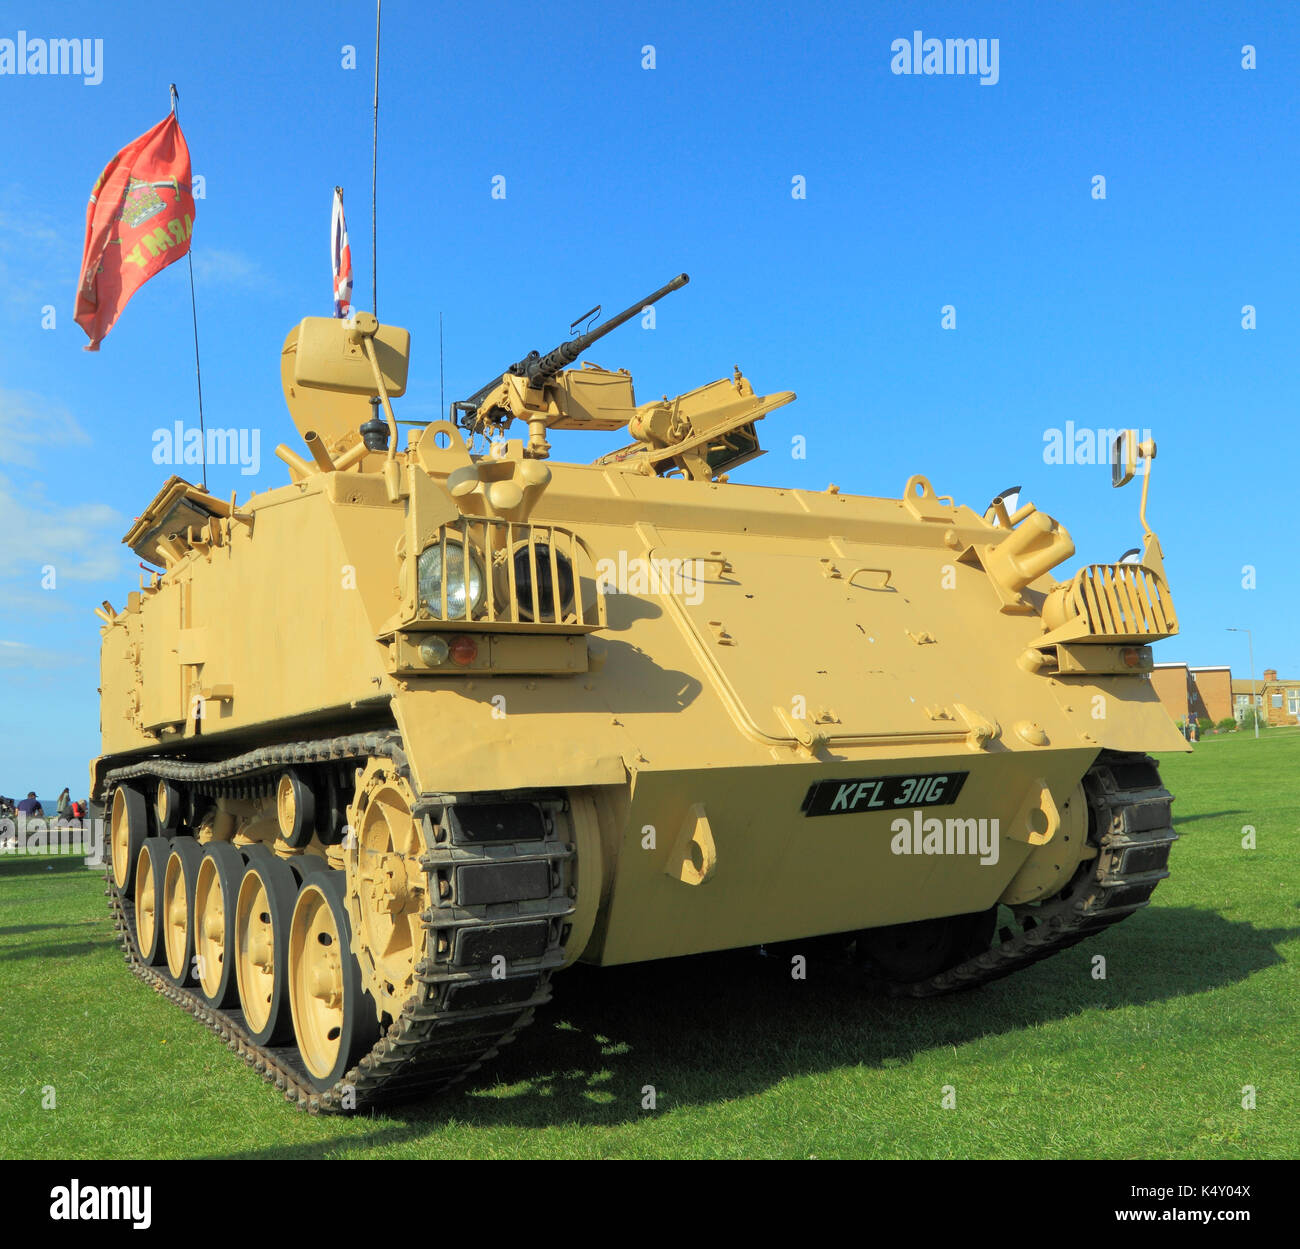 British Army 432 Tank, deployed in 1st Iraq War, military vehicle, vehicles, England, UK armoured personell personel carrier - Stock Image